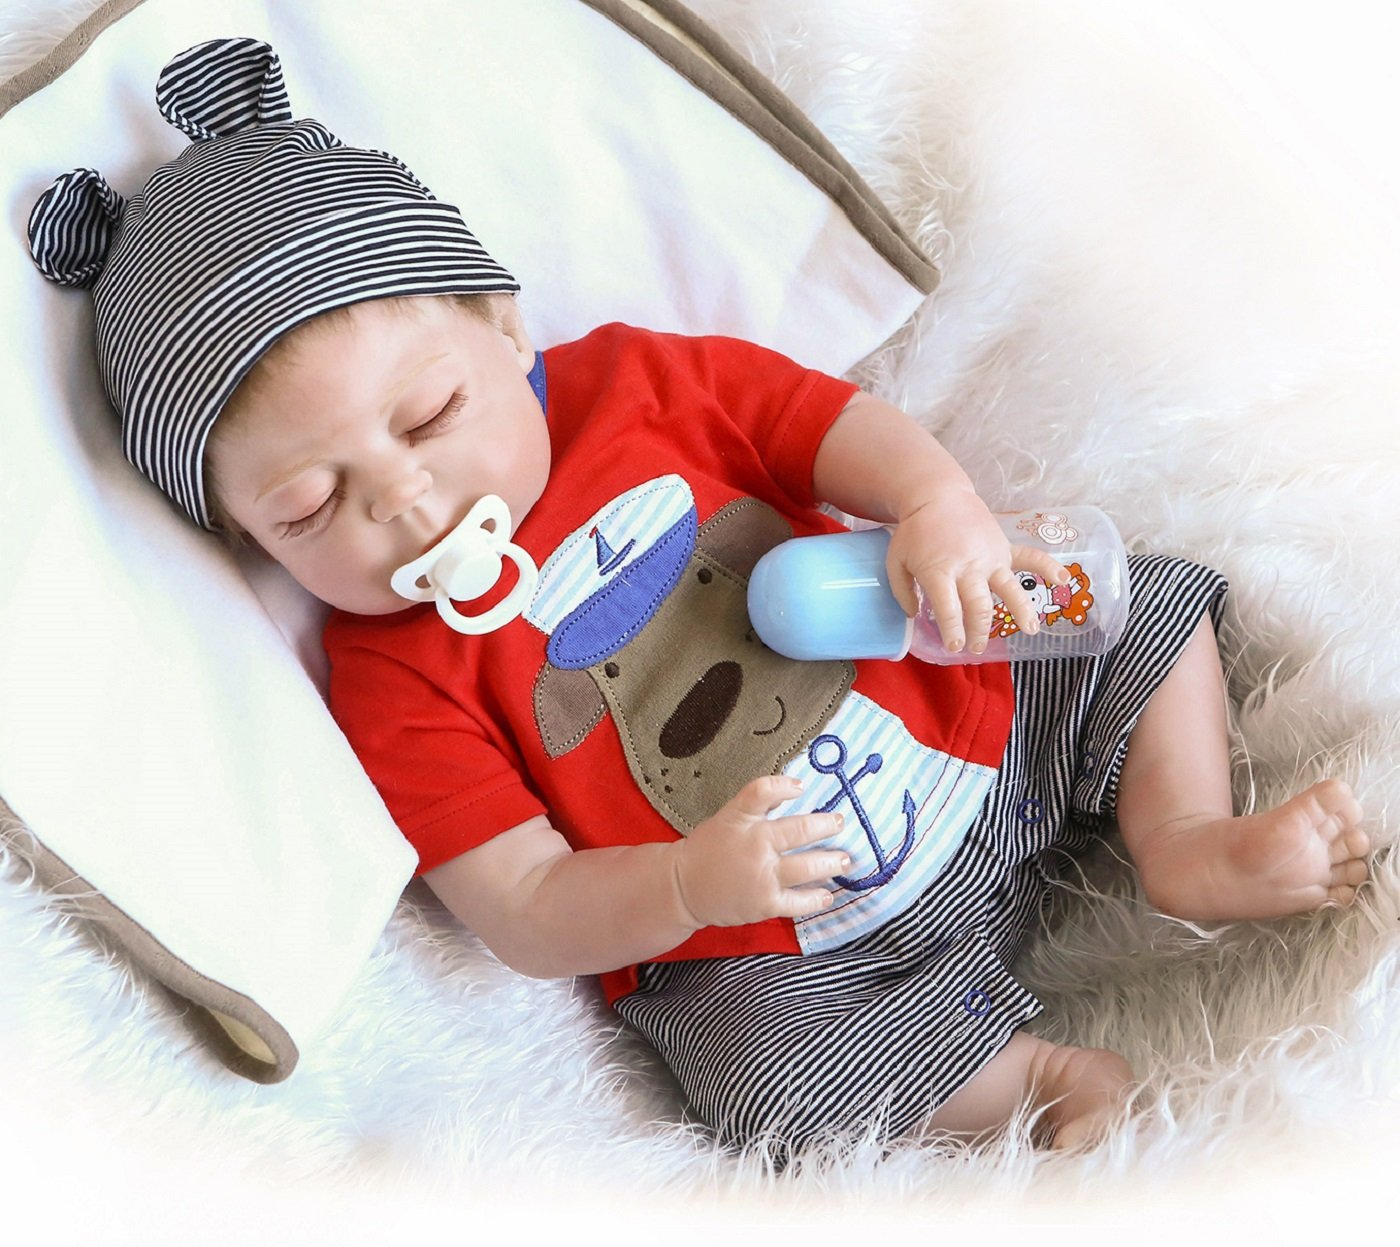 NPK 22'' Reborn Baby Dolls boy Full Silicone Body Realistic Lifelike Washable Toy Doll Handmade Anatomically Correct red outfit Gift Set for Ages 3+